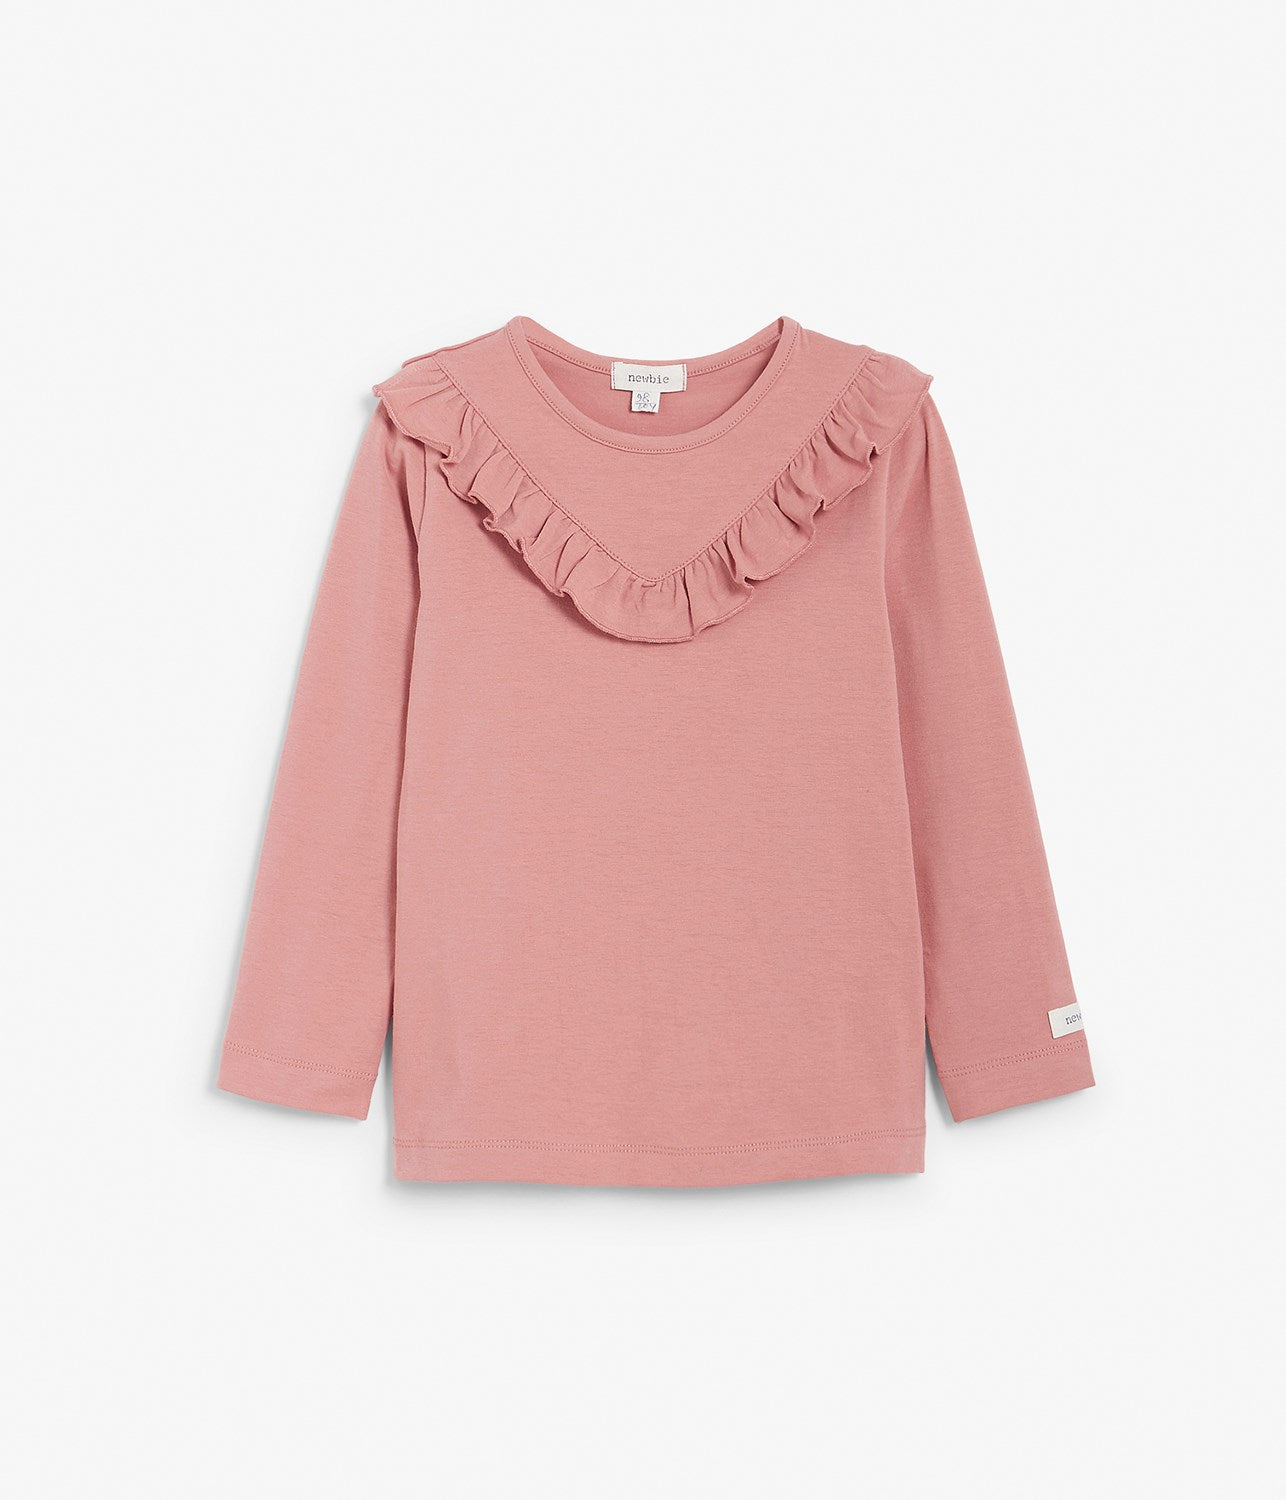 Kids pink top with ruffles